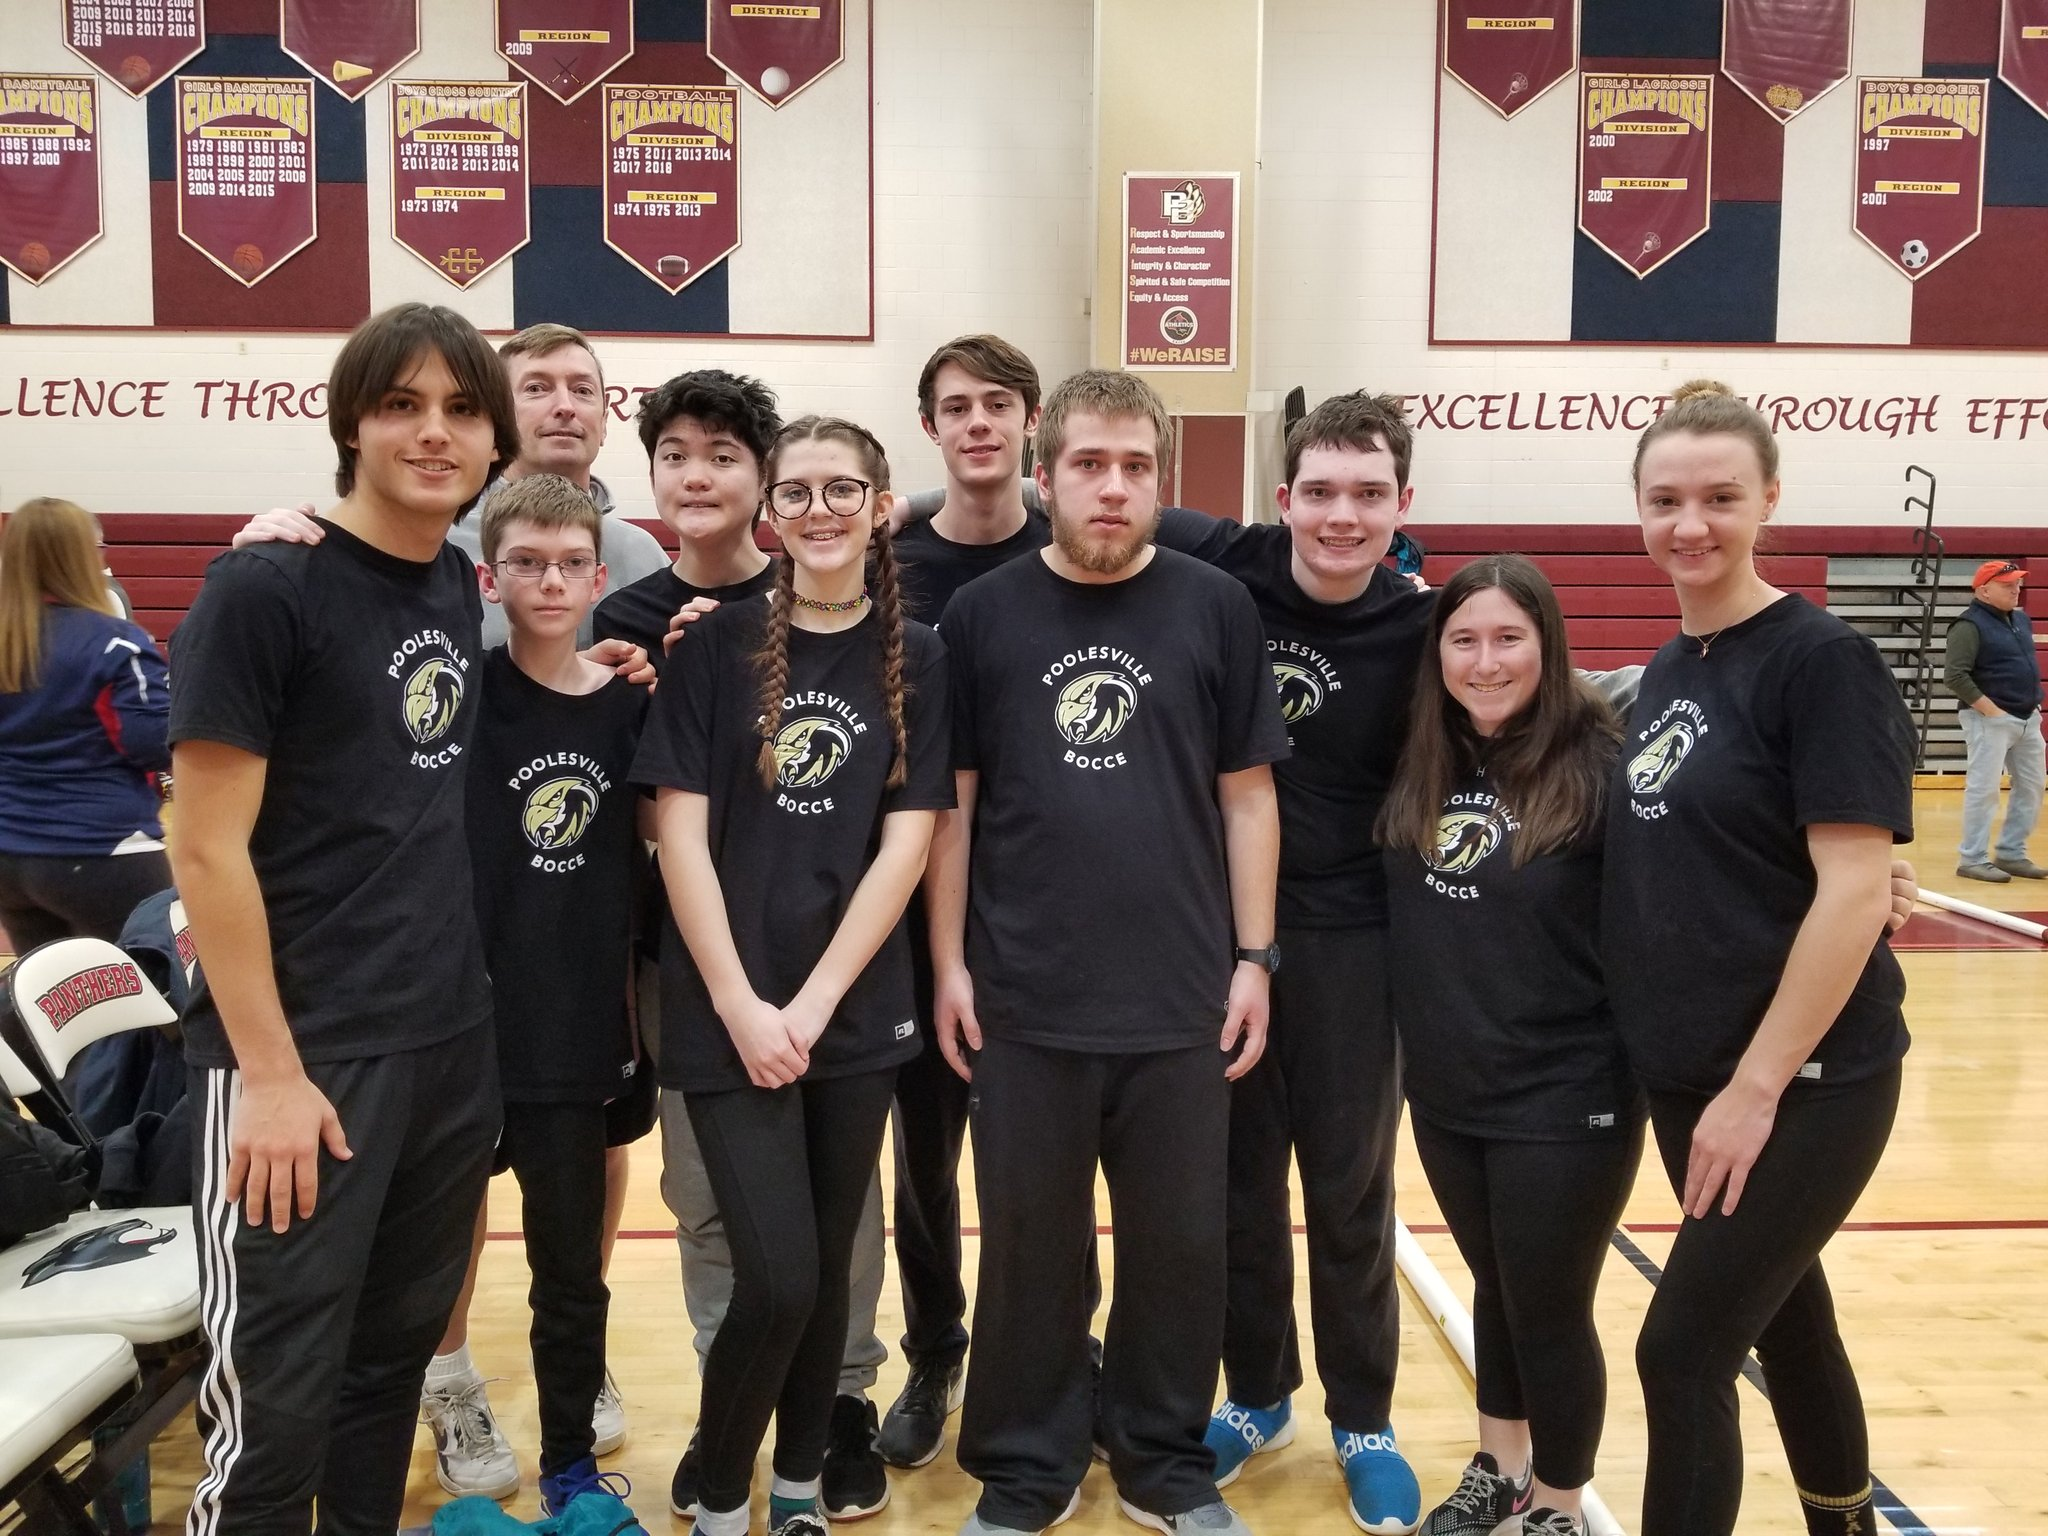 Bocce team photo from the 2020 MCPS Championship